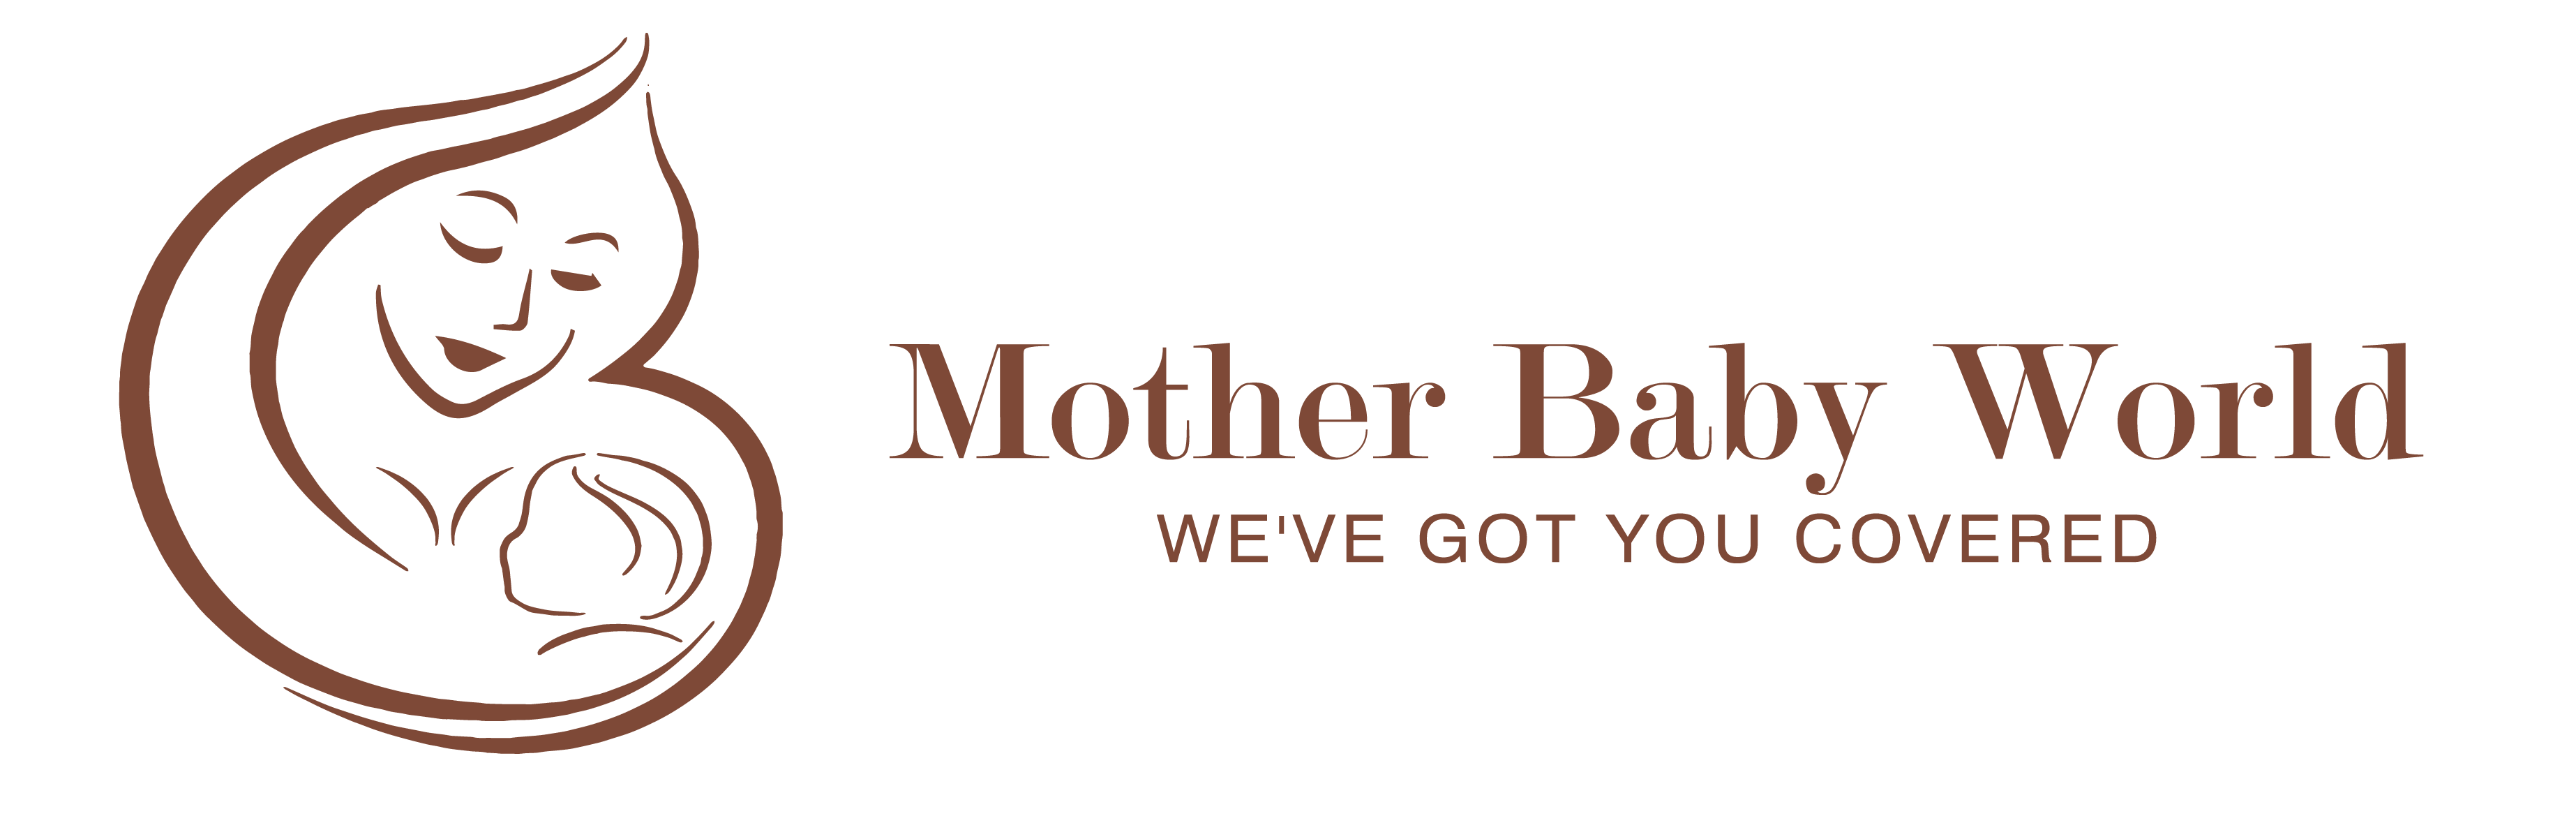 Mother Baby World